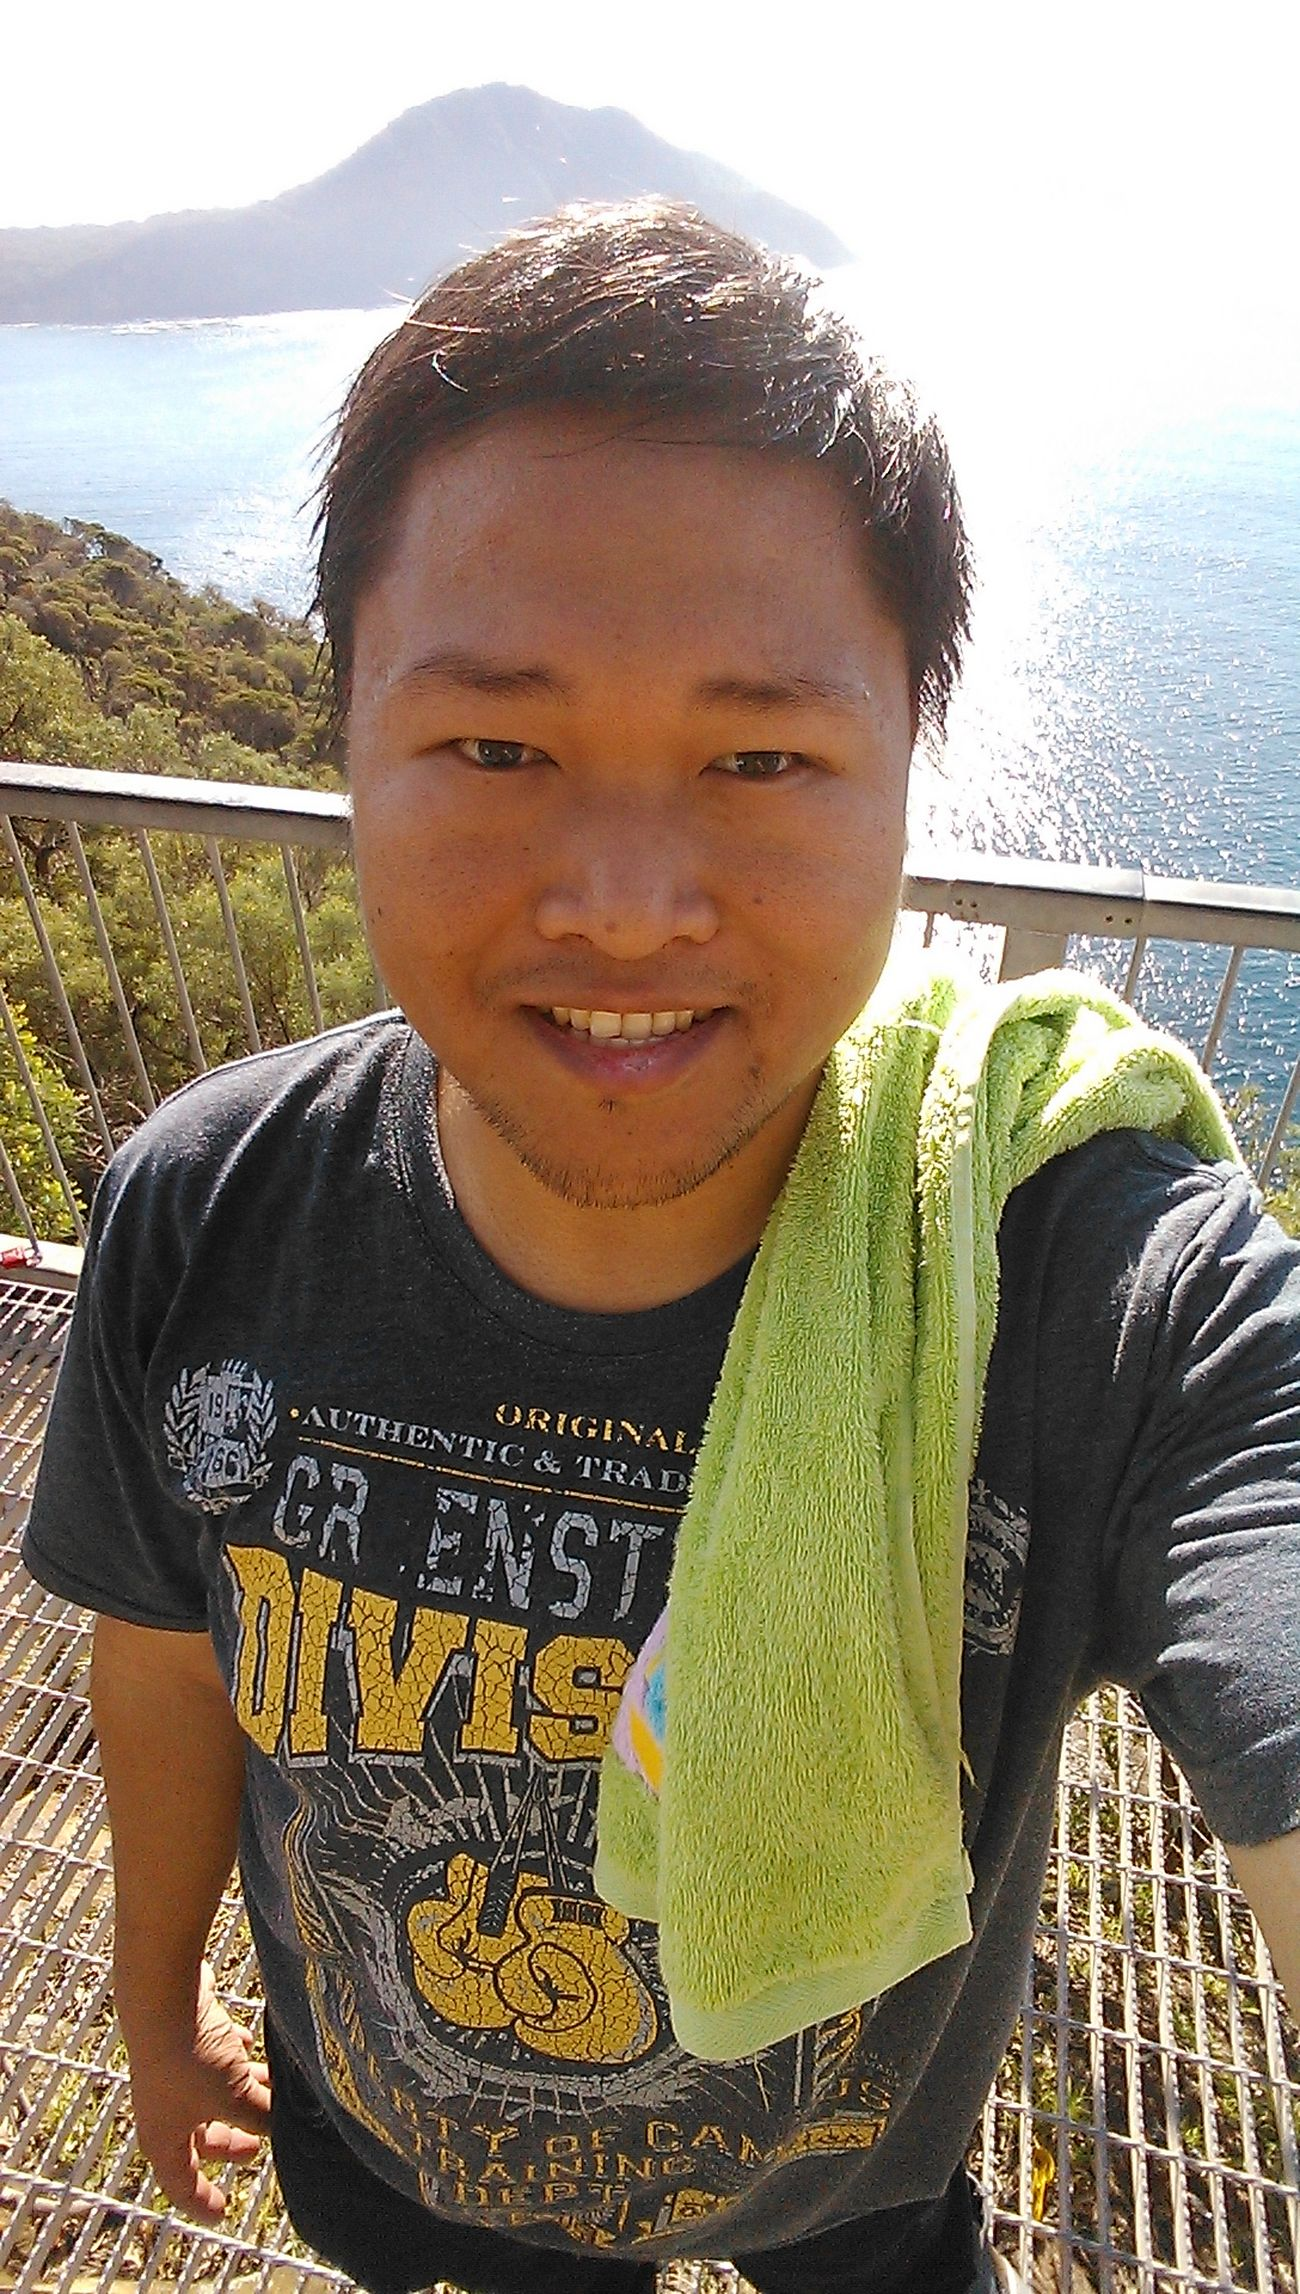 I reached the top of the hill. now for a selfie! Taking Photos View Hanging Out At The Lookout